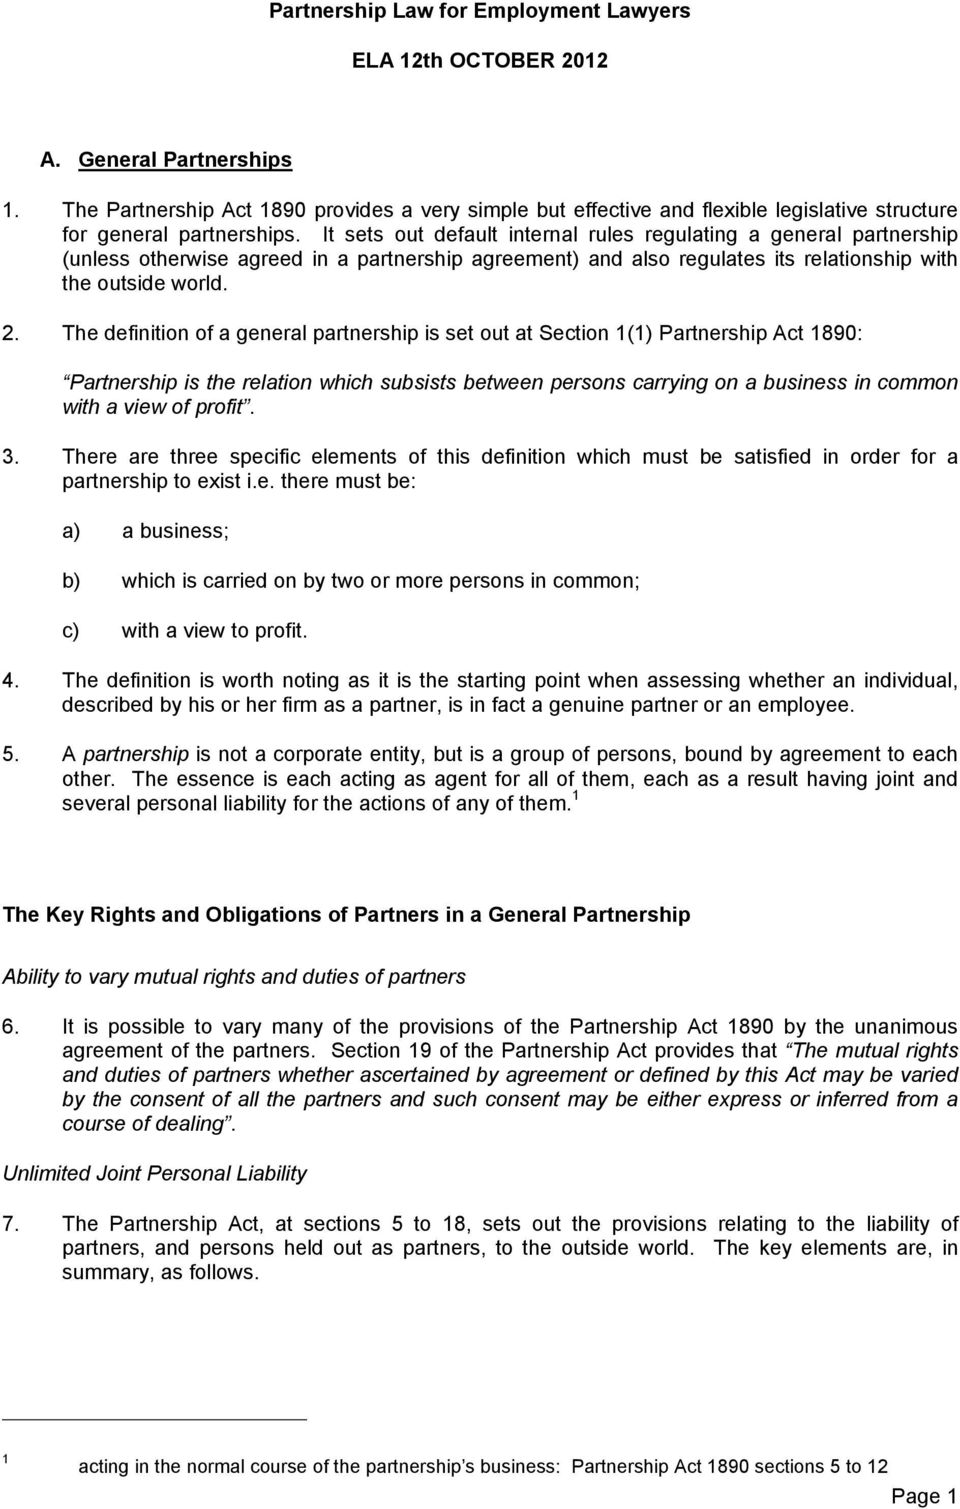 partnership law for employment lawyers. ela 12th october pdf